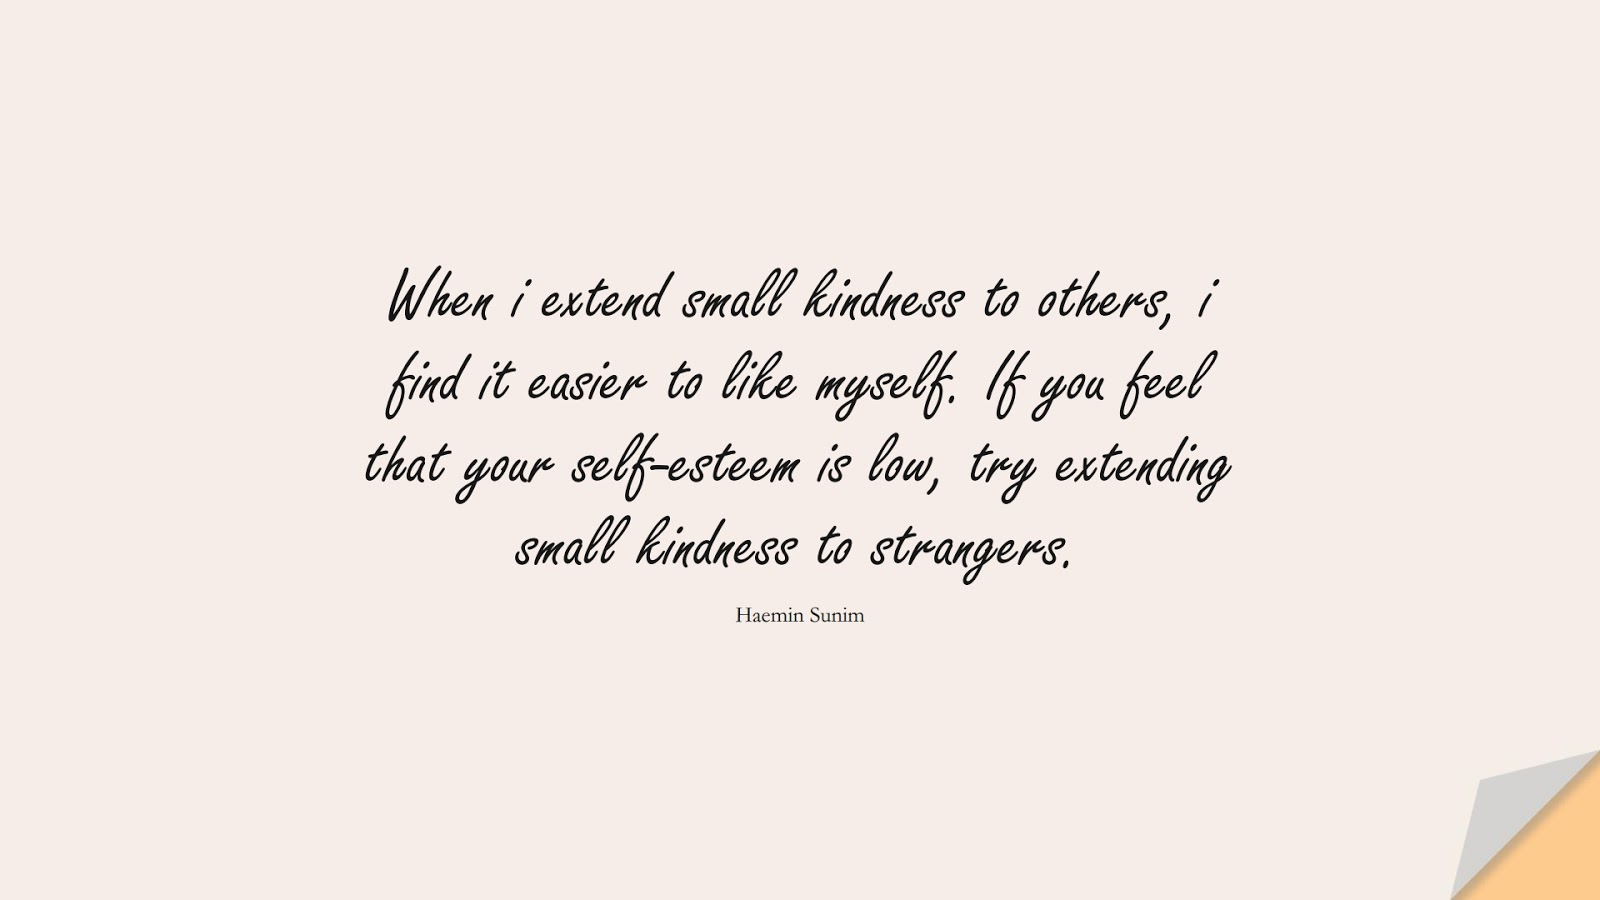 When i extend small kindness to others, i find it easier to like myself. If you feel that your self-esteem is low, try extending small kindness to strangers. (Haemin Sunim);  #SelfEsteemQuotes